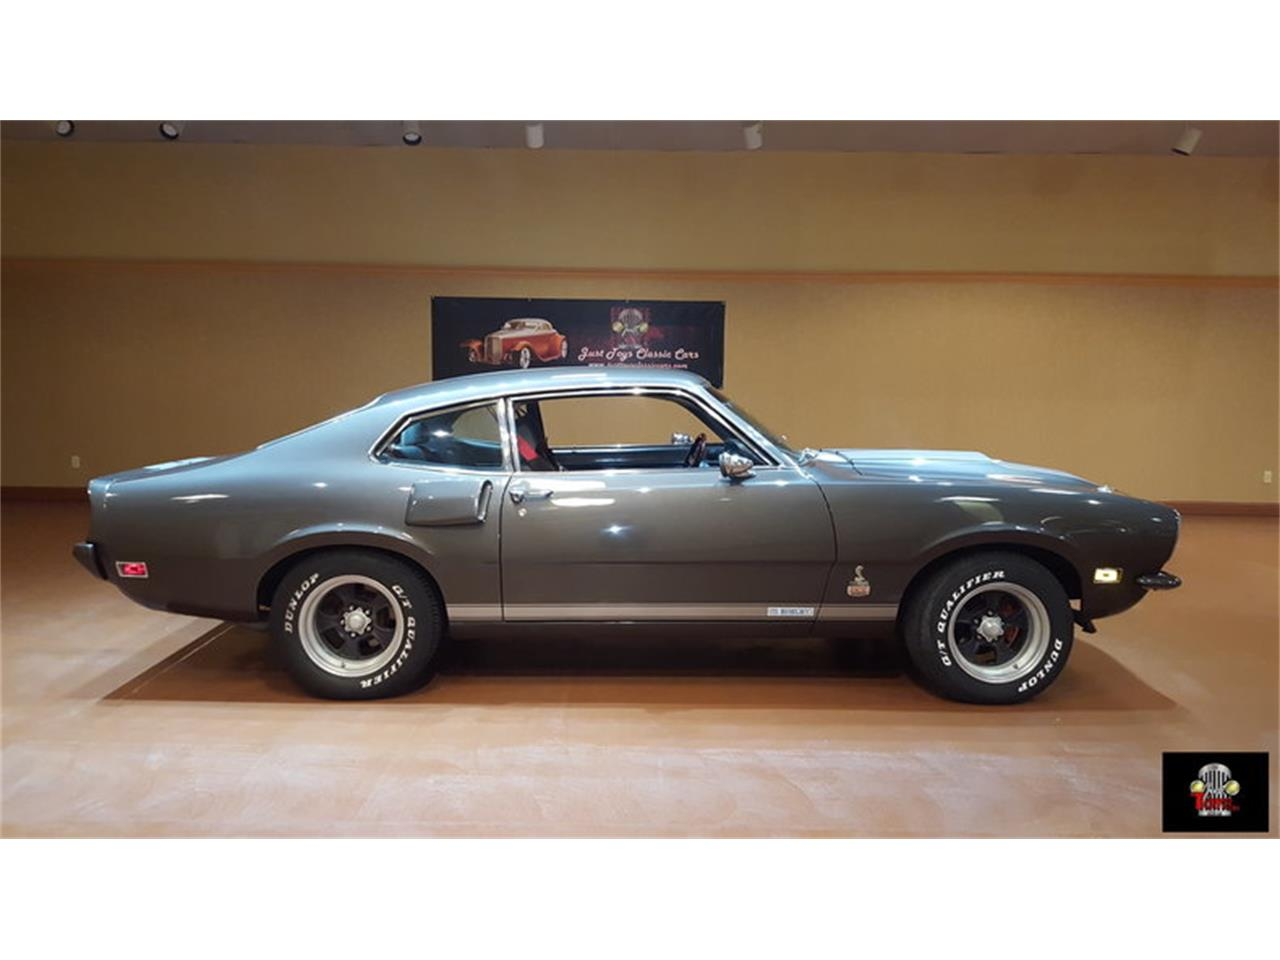 Ford Maverick For Sale >> For Sale 1973 Ford Maverick In Orlando Florida